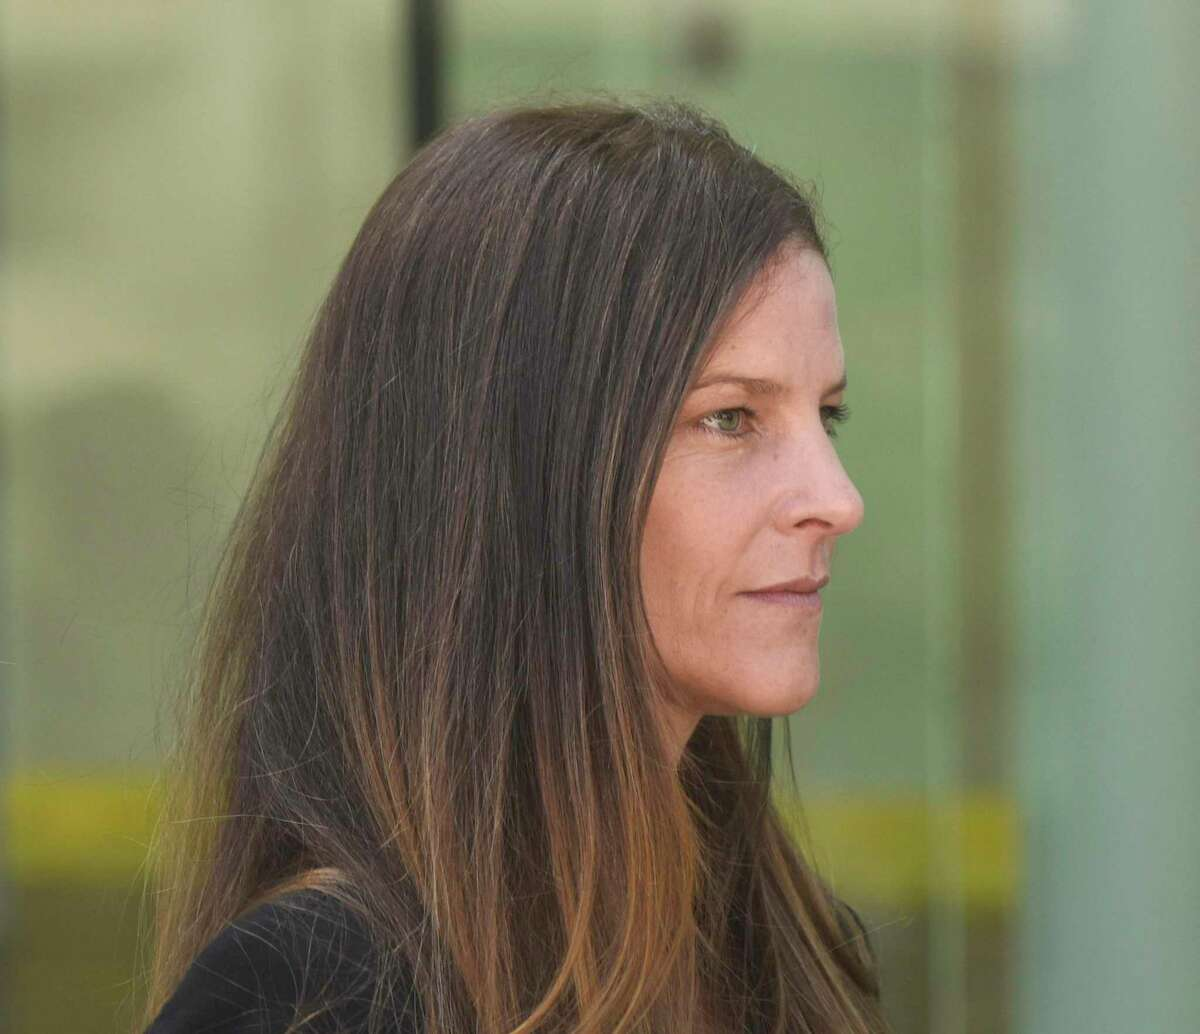 Michelle Troconis is seeking to have her electronic monitoring device removed while free on $2.1 million bond in the Jennifer Dulos case.